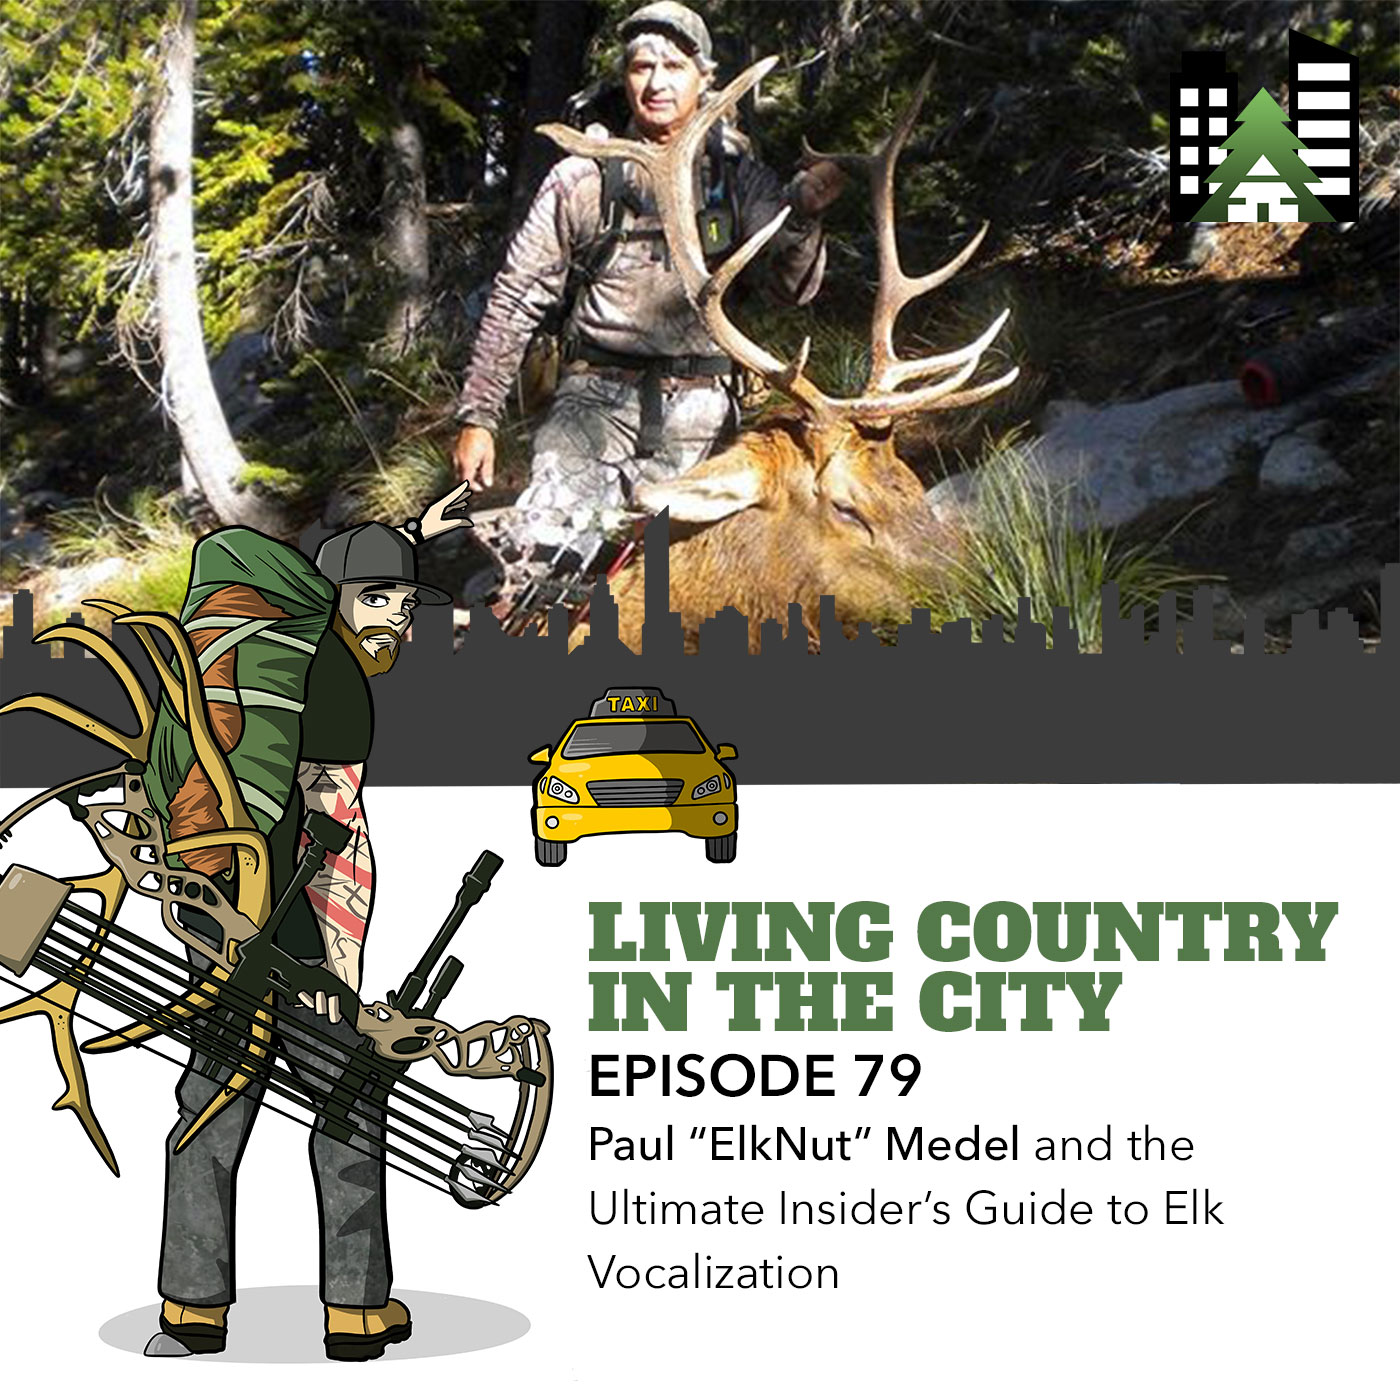 """Living Country in the City - Episode 79 - Paul """"ElkNut"""" Medel and the Ultimate Insider's Guide to Elk Vocalization"""